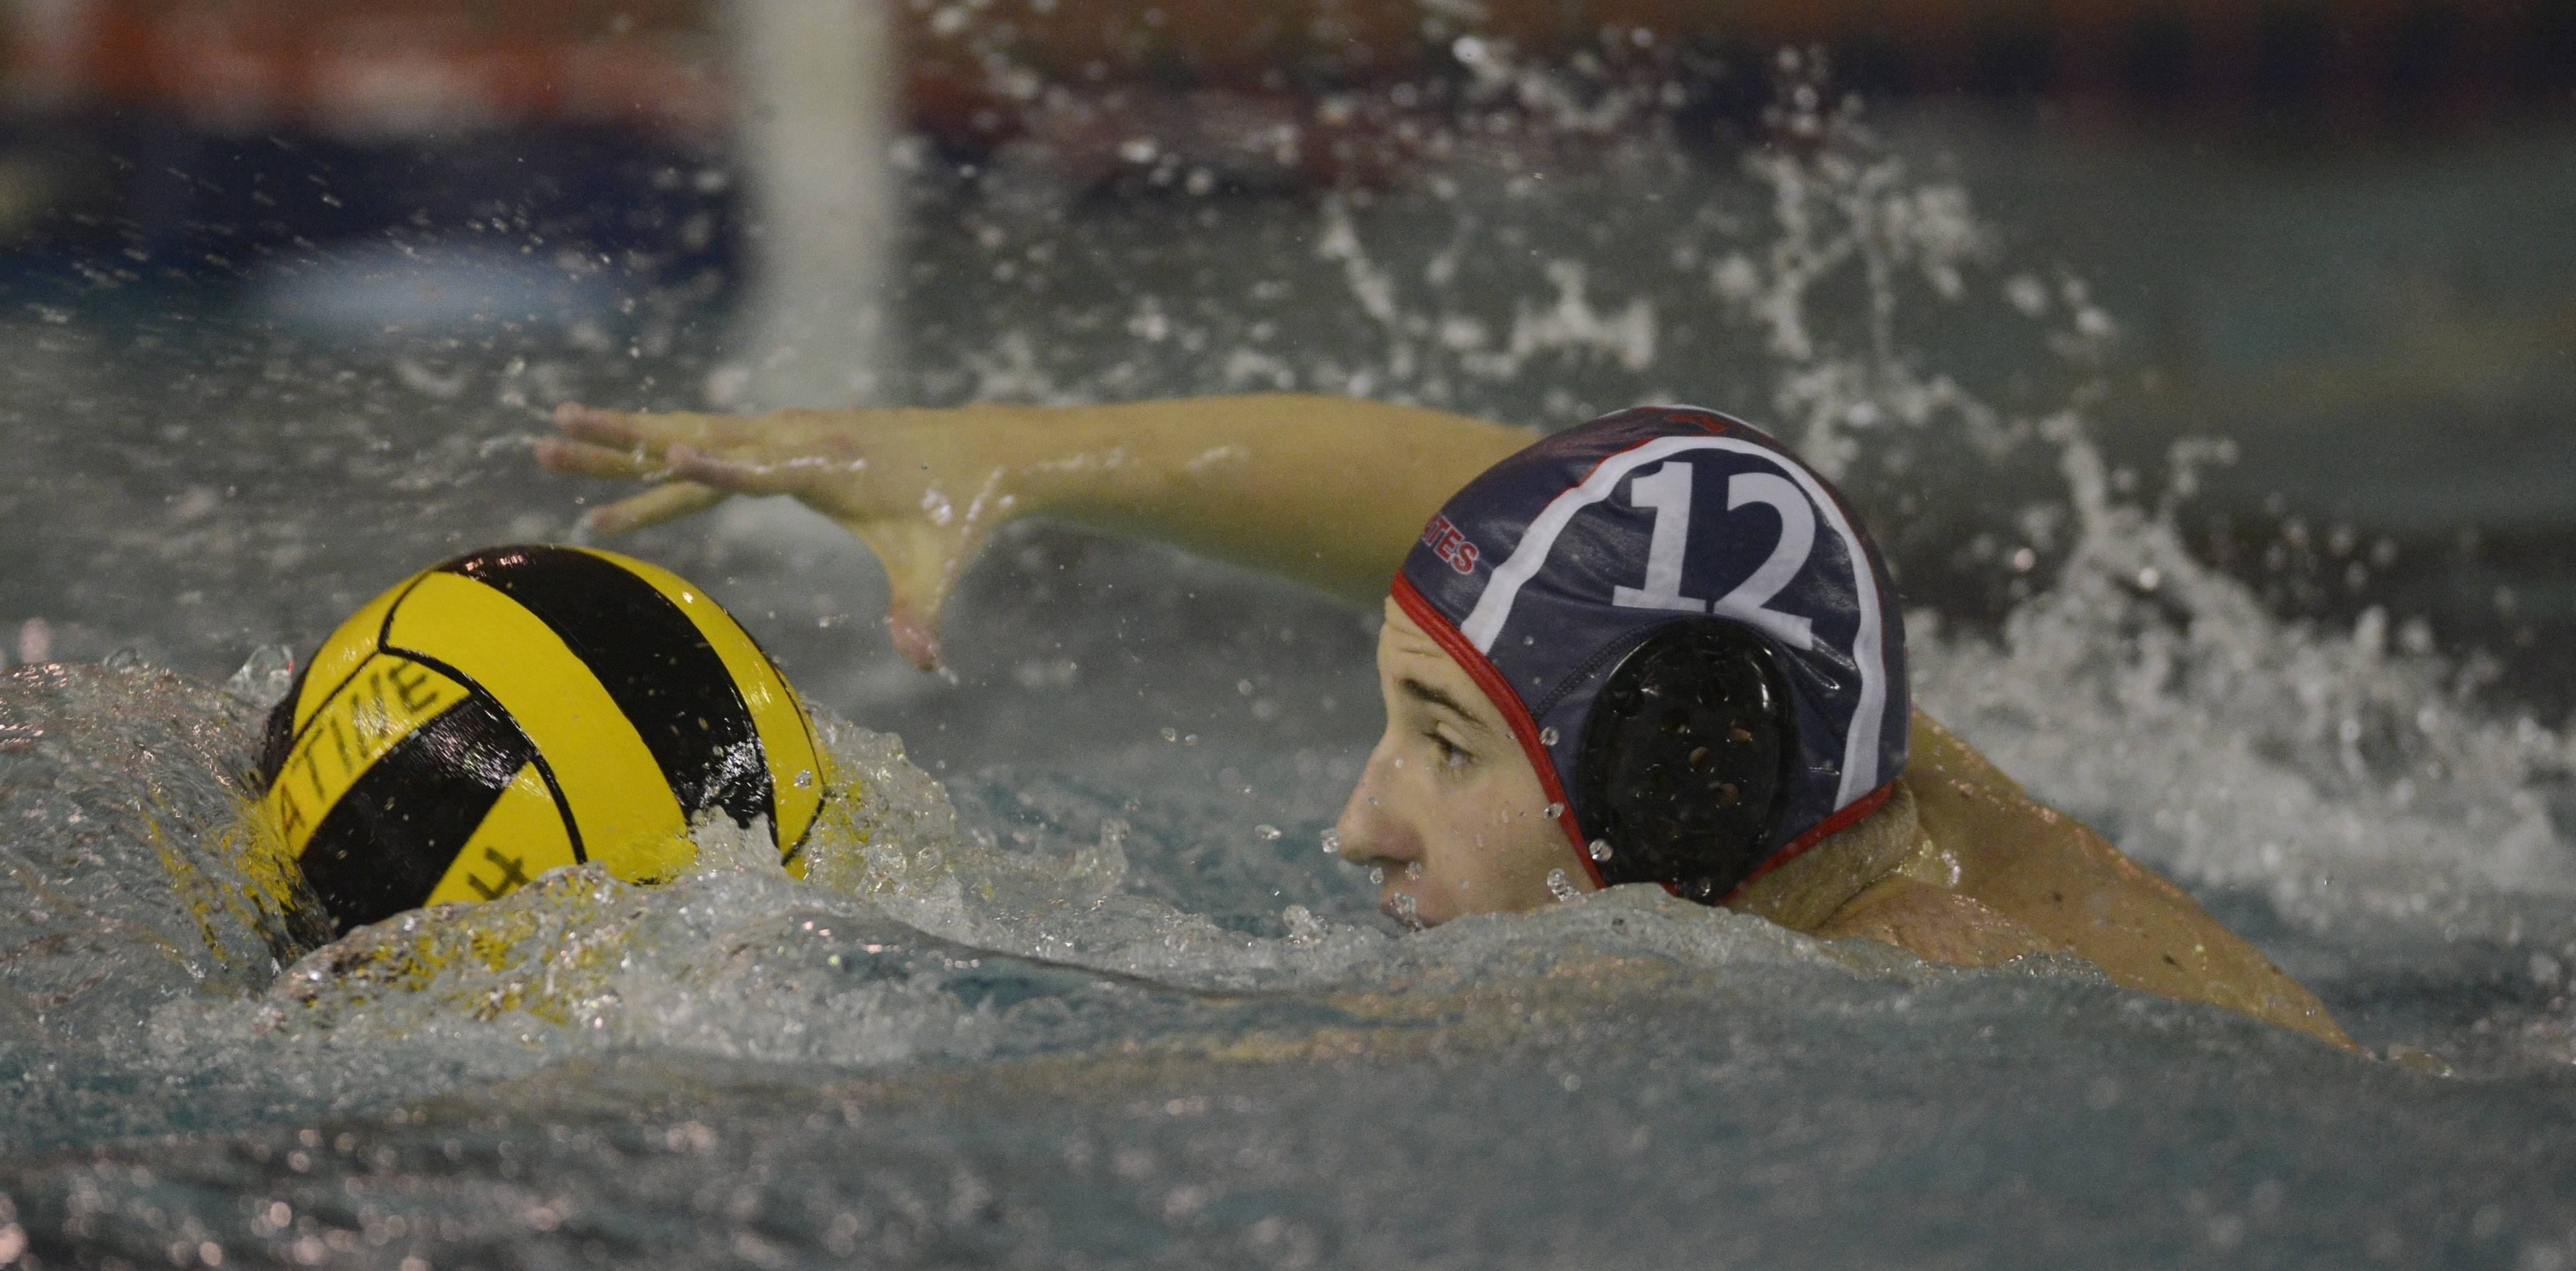 Palatine's Jacob Baran moves the ball on a fastbreak during Saturday's water polo tournament at Palatine.